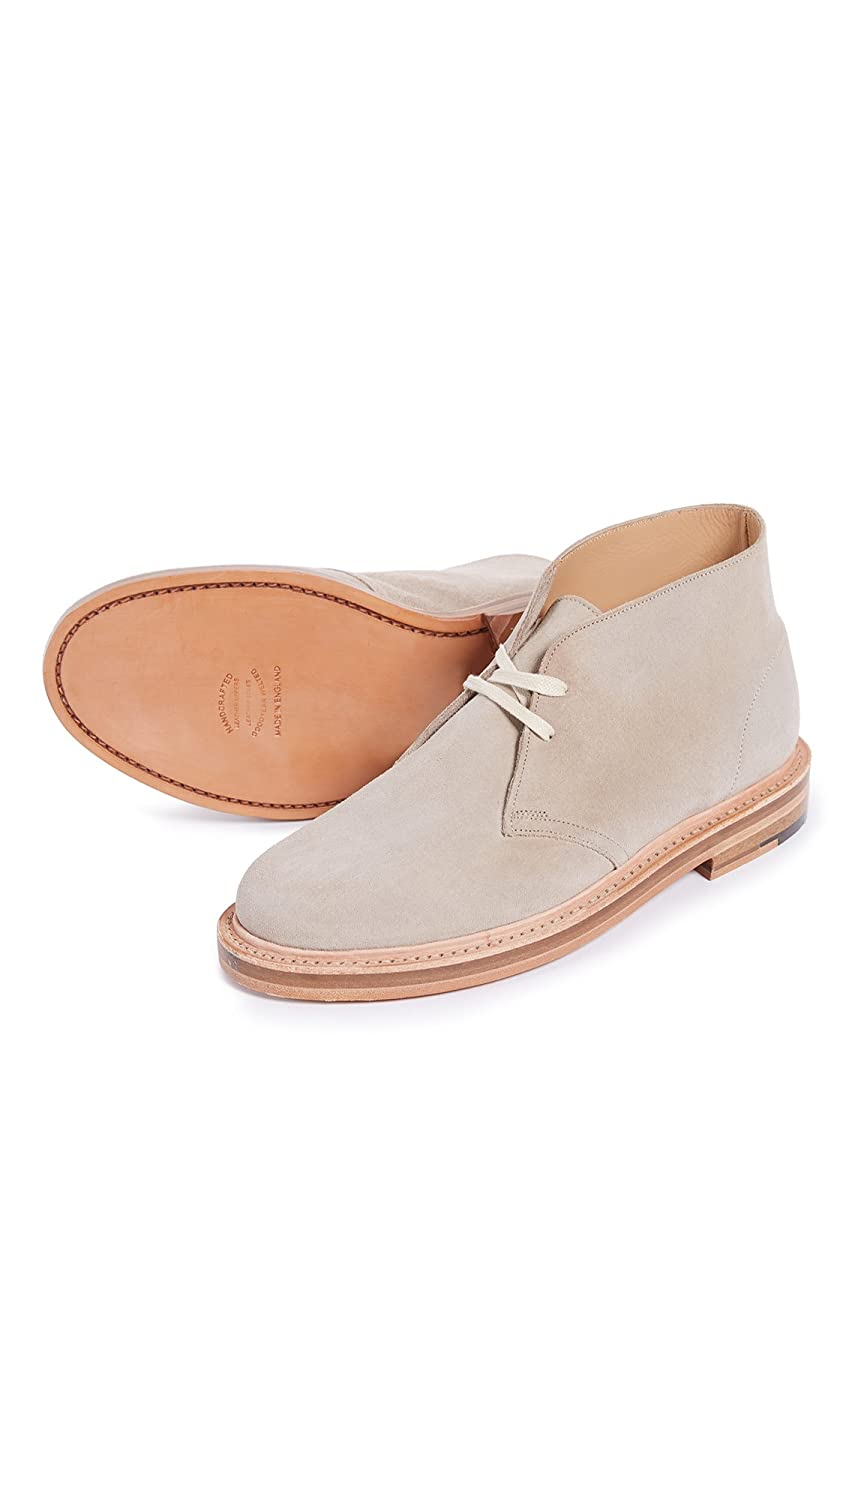 acd3c0cee2a Clarks Desert Welt Leather Boots Sand 11 D(M) US  Buy Online at Low Prices  in India - Amazon.in